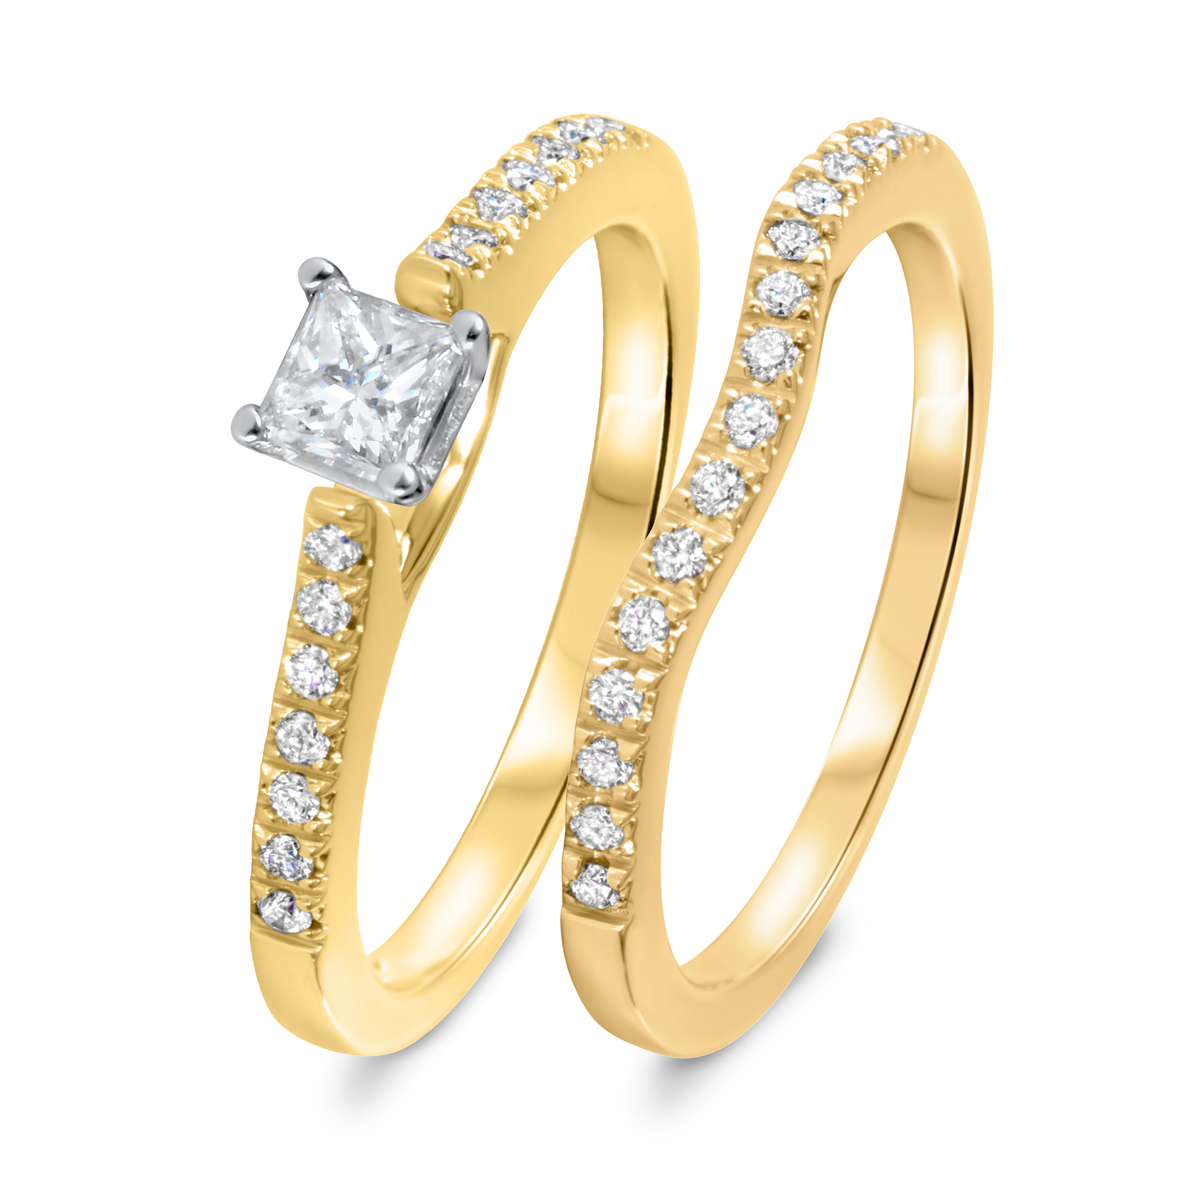 1/2 CT. T.W. Diamond Women's Bridal Wedding Ring Set 14K Yellow Gold